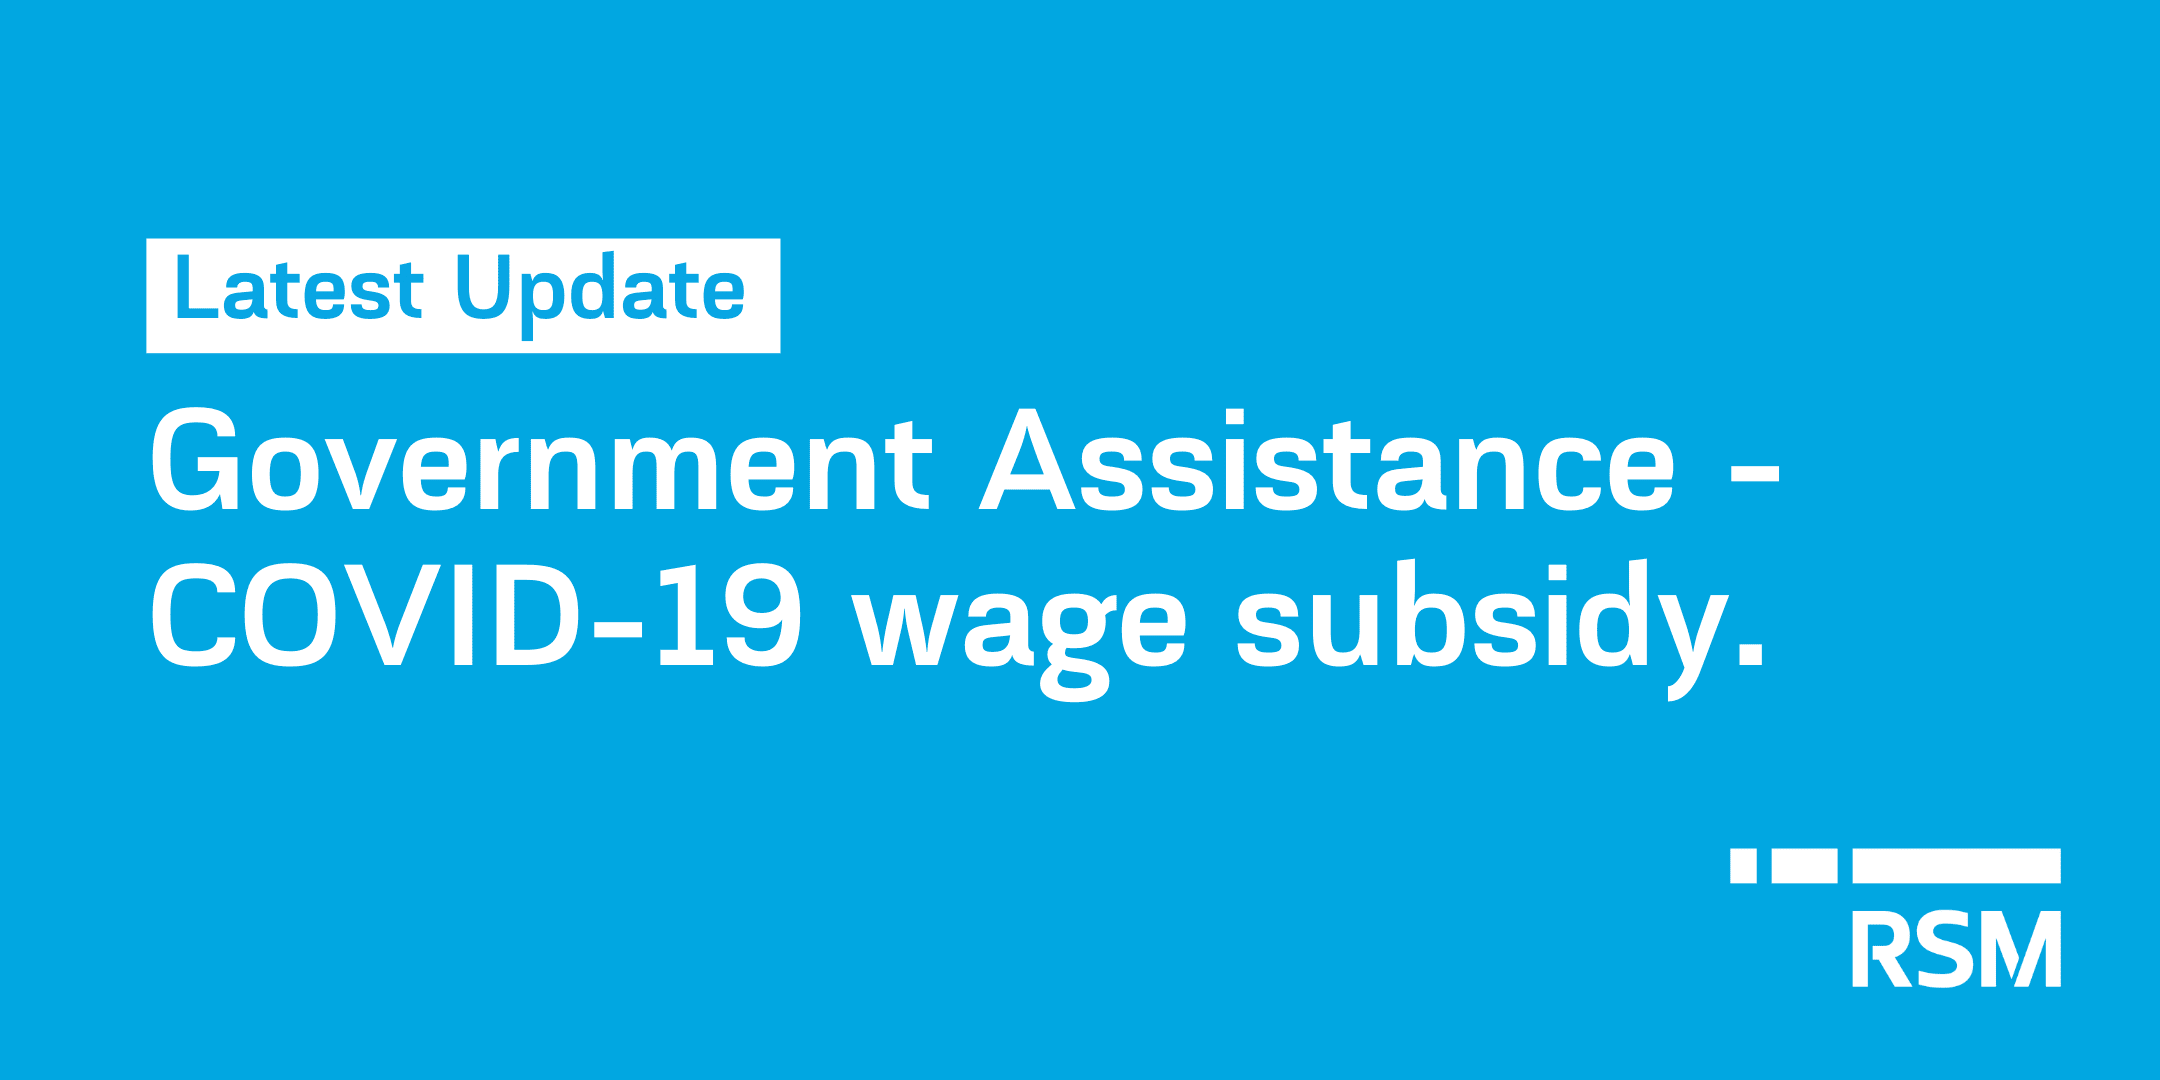 public://media/latest_update_-_covid_19_wage_subsidy.png